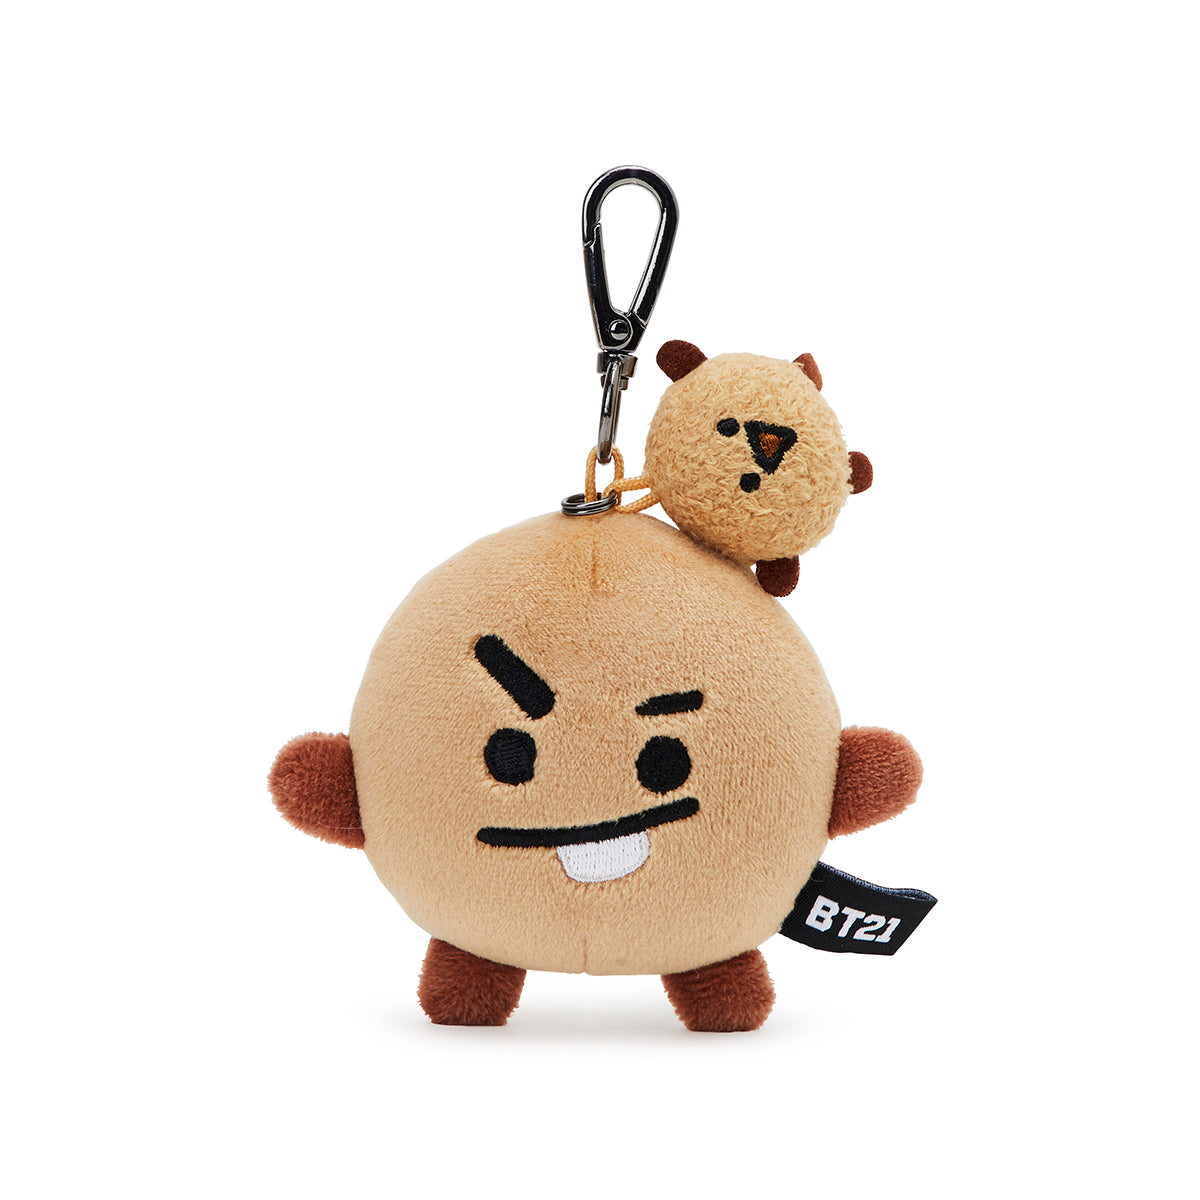 BT21 SHOOKY Soft Lying Plush Bag Charm